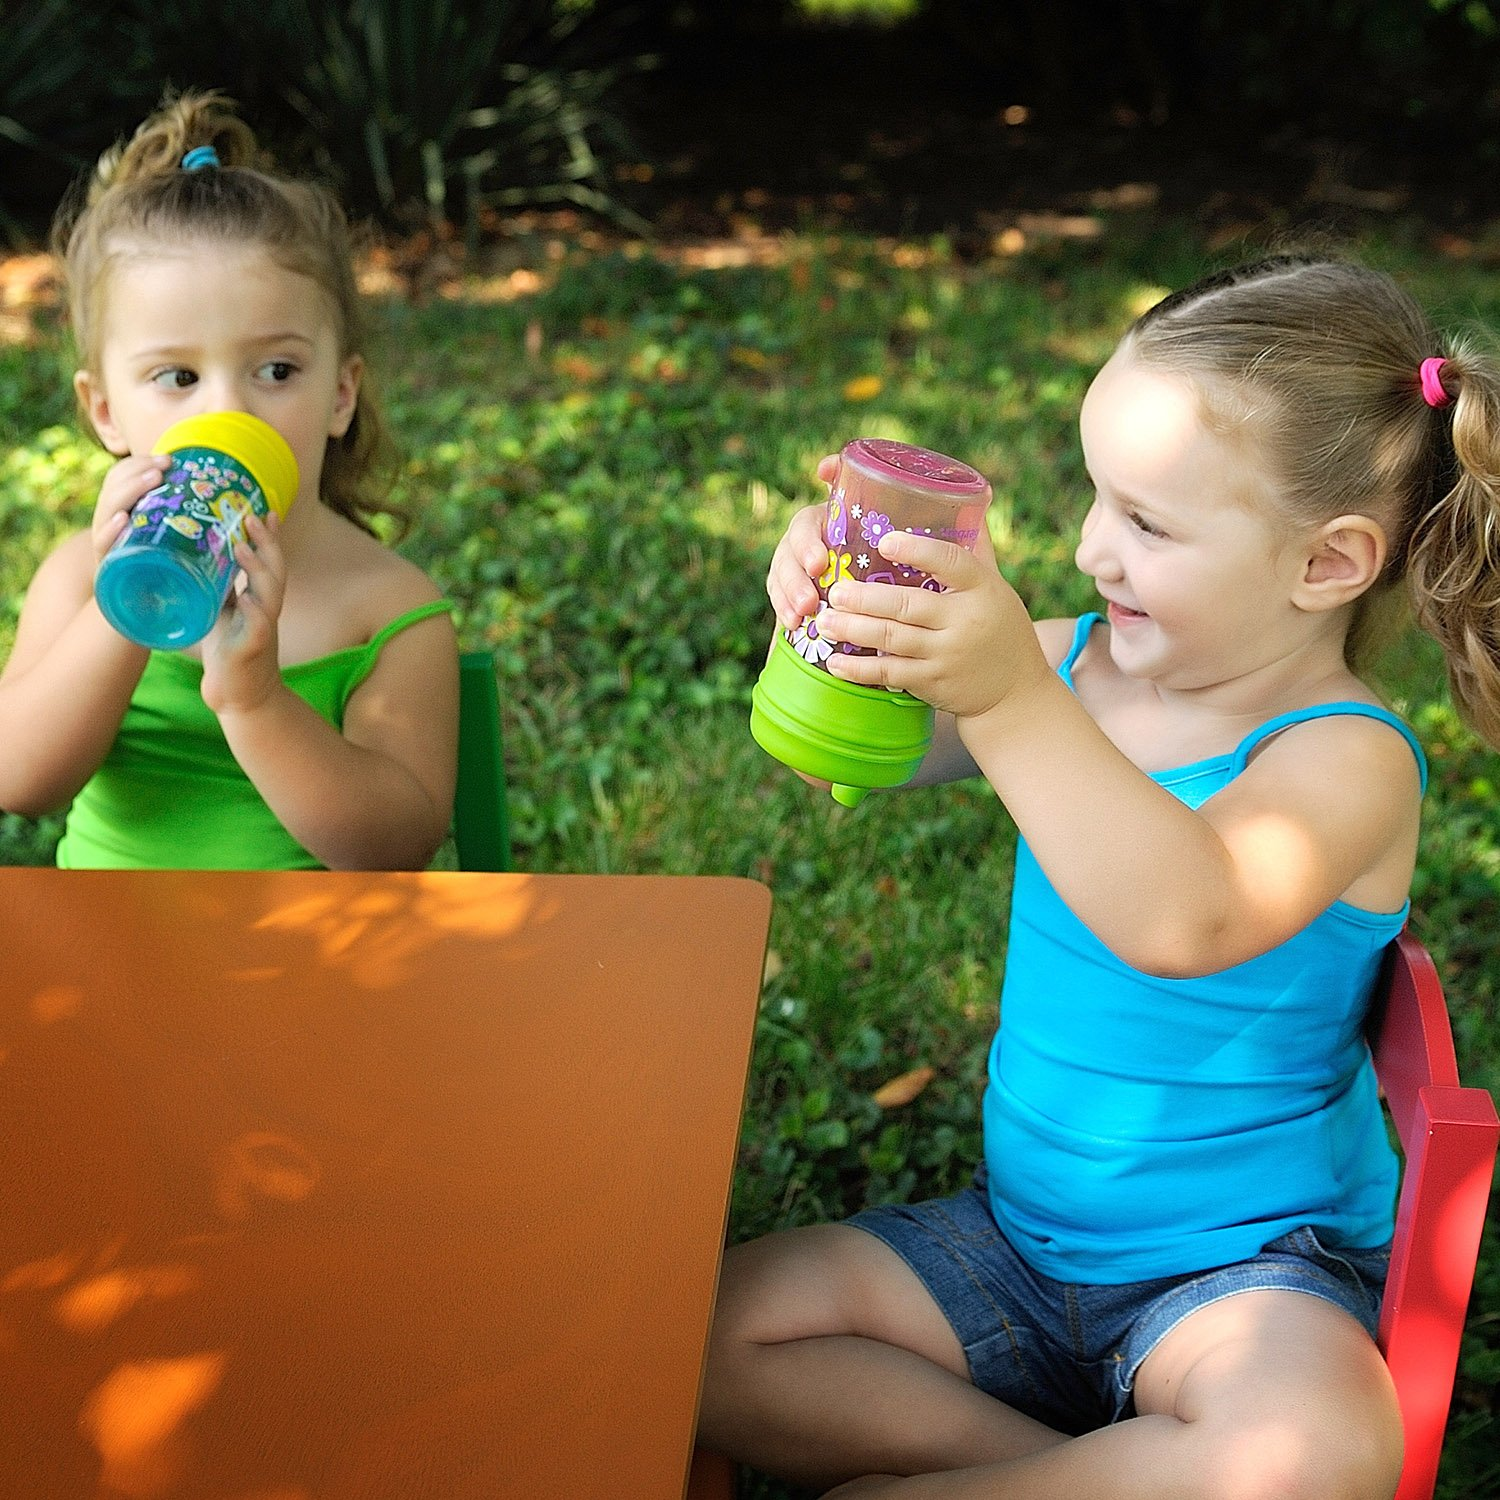 Healthy Sprouts Silicone Sippy Lids (5 Pack) - Lab Tested, Spill Proof, BPA Free, Universal Soft Spout Stretch Tops | Make Any Cup a Sippy Cup for Toddler, Baby, Infant (Red Yellow Blue) by Healthy Sprouts (Image #9)